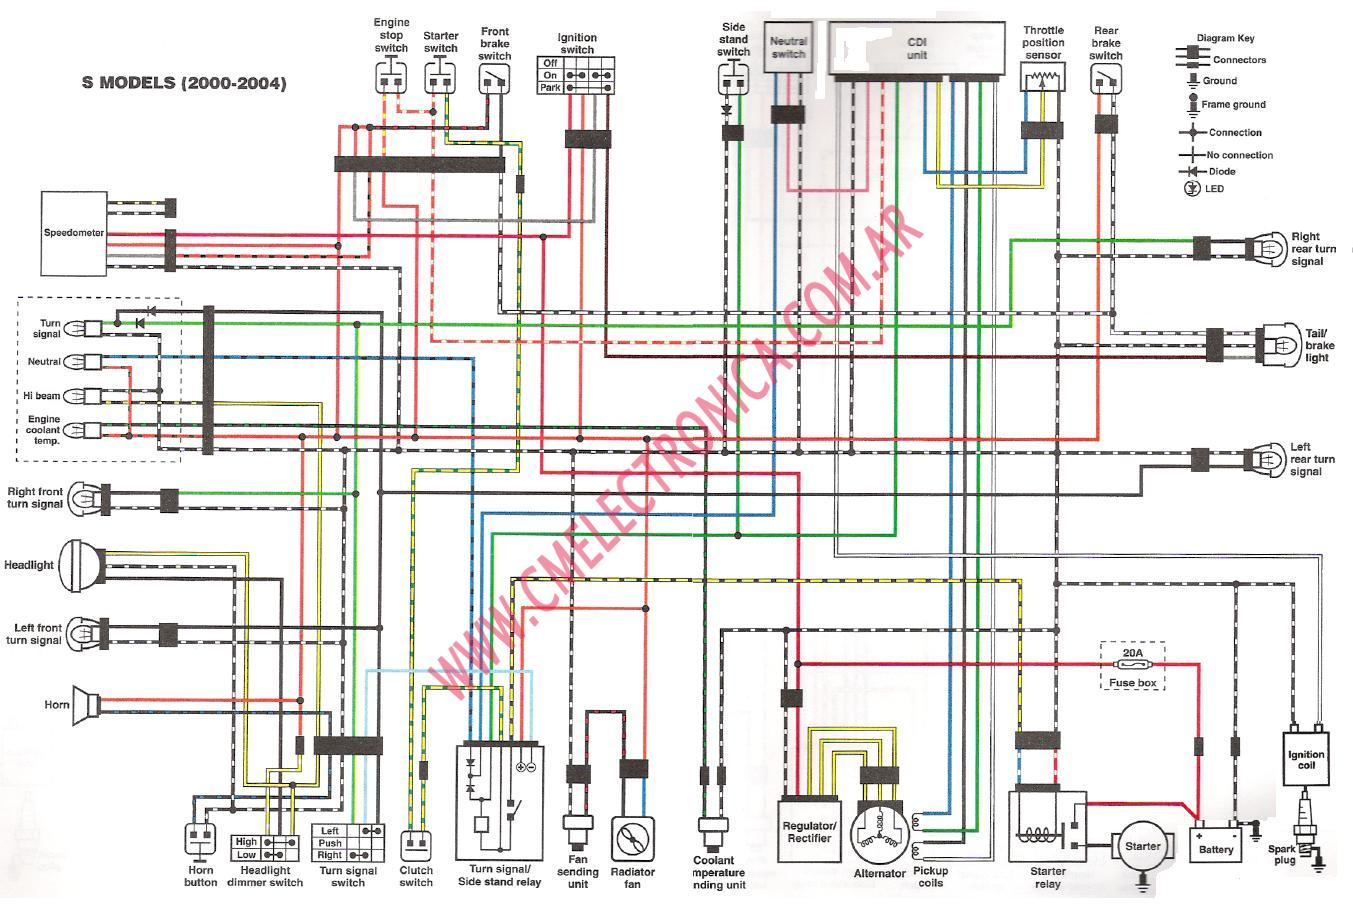 suzuki drz400s headlight issue 2008 honda cbr600rr wiring diagram at mifinder.co